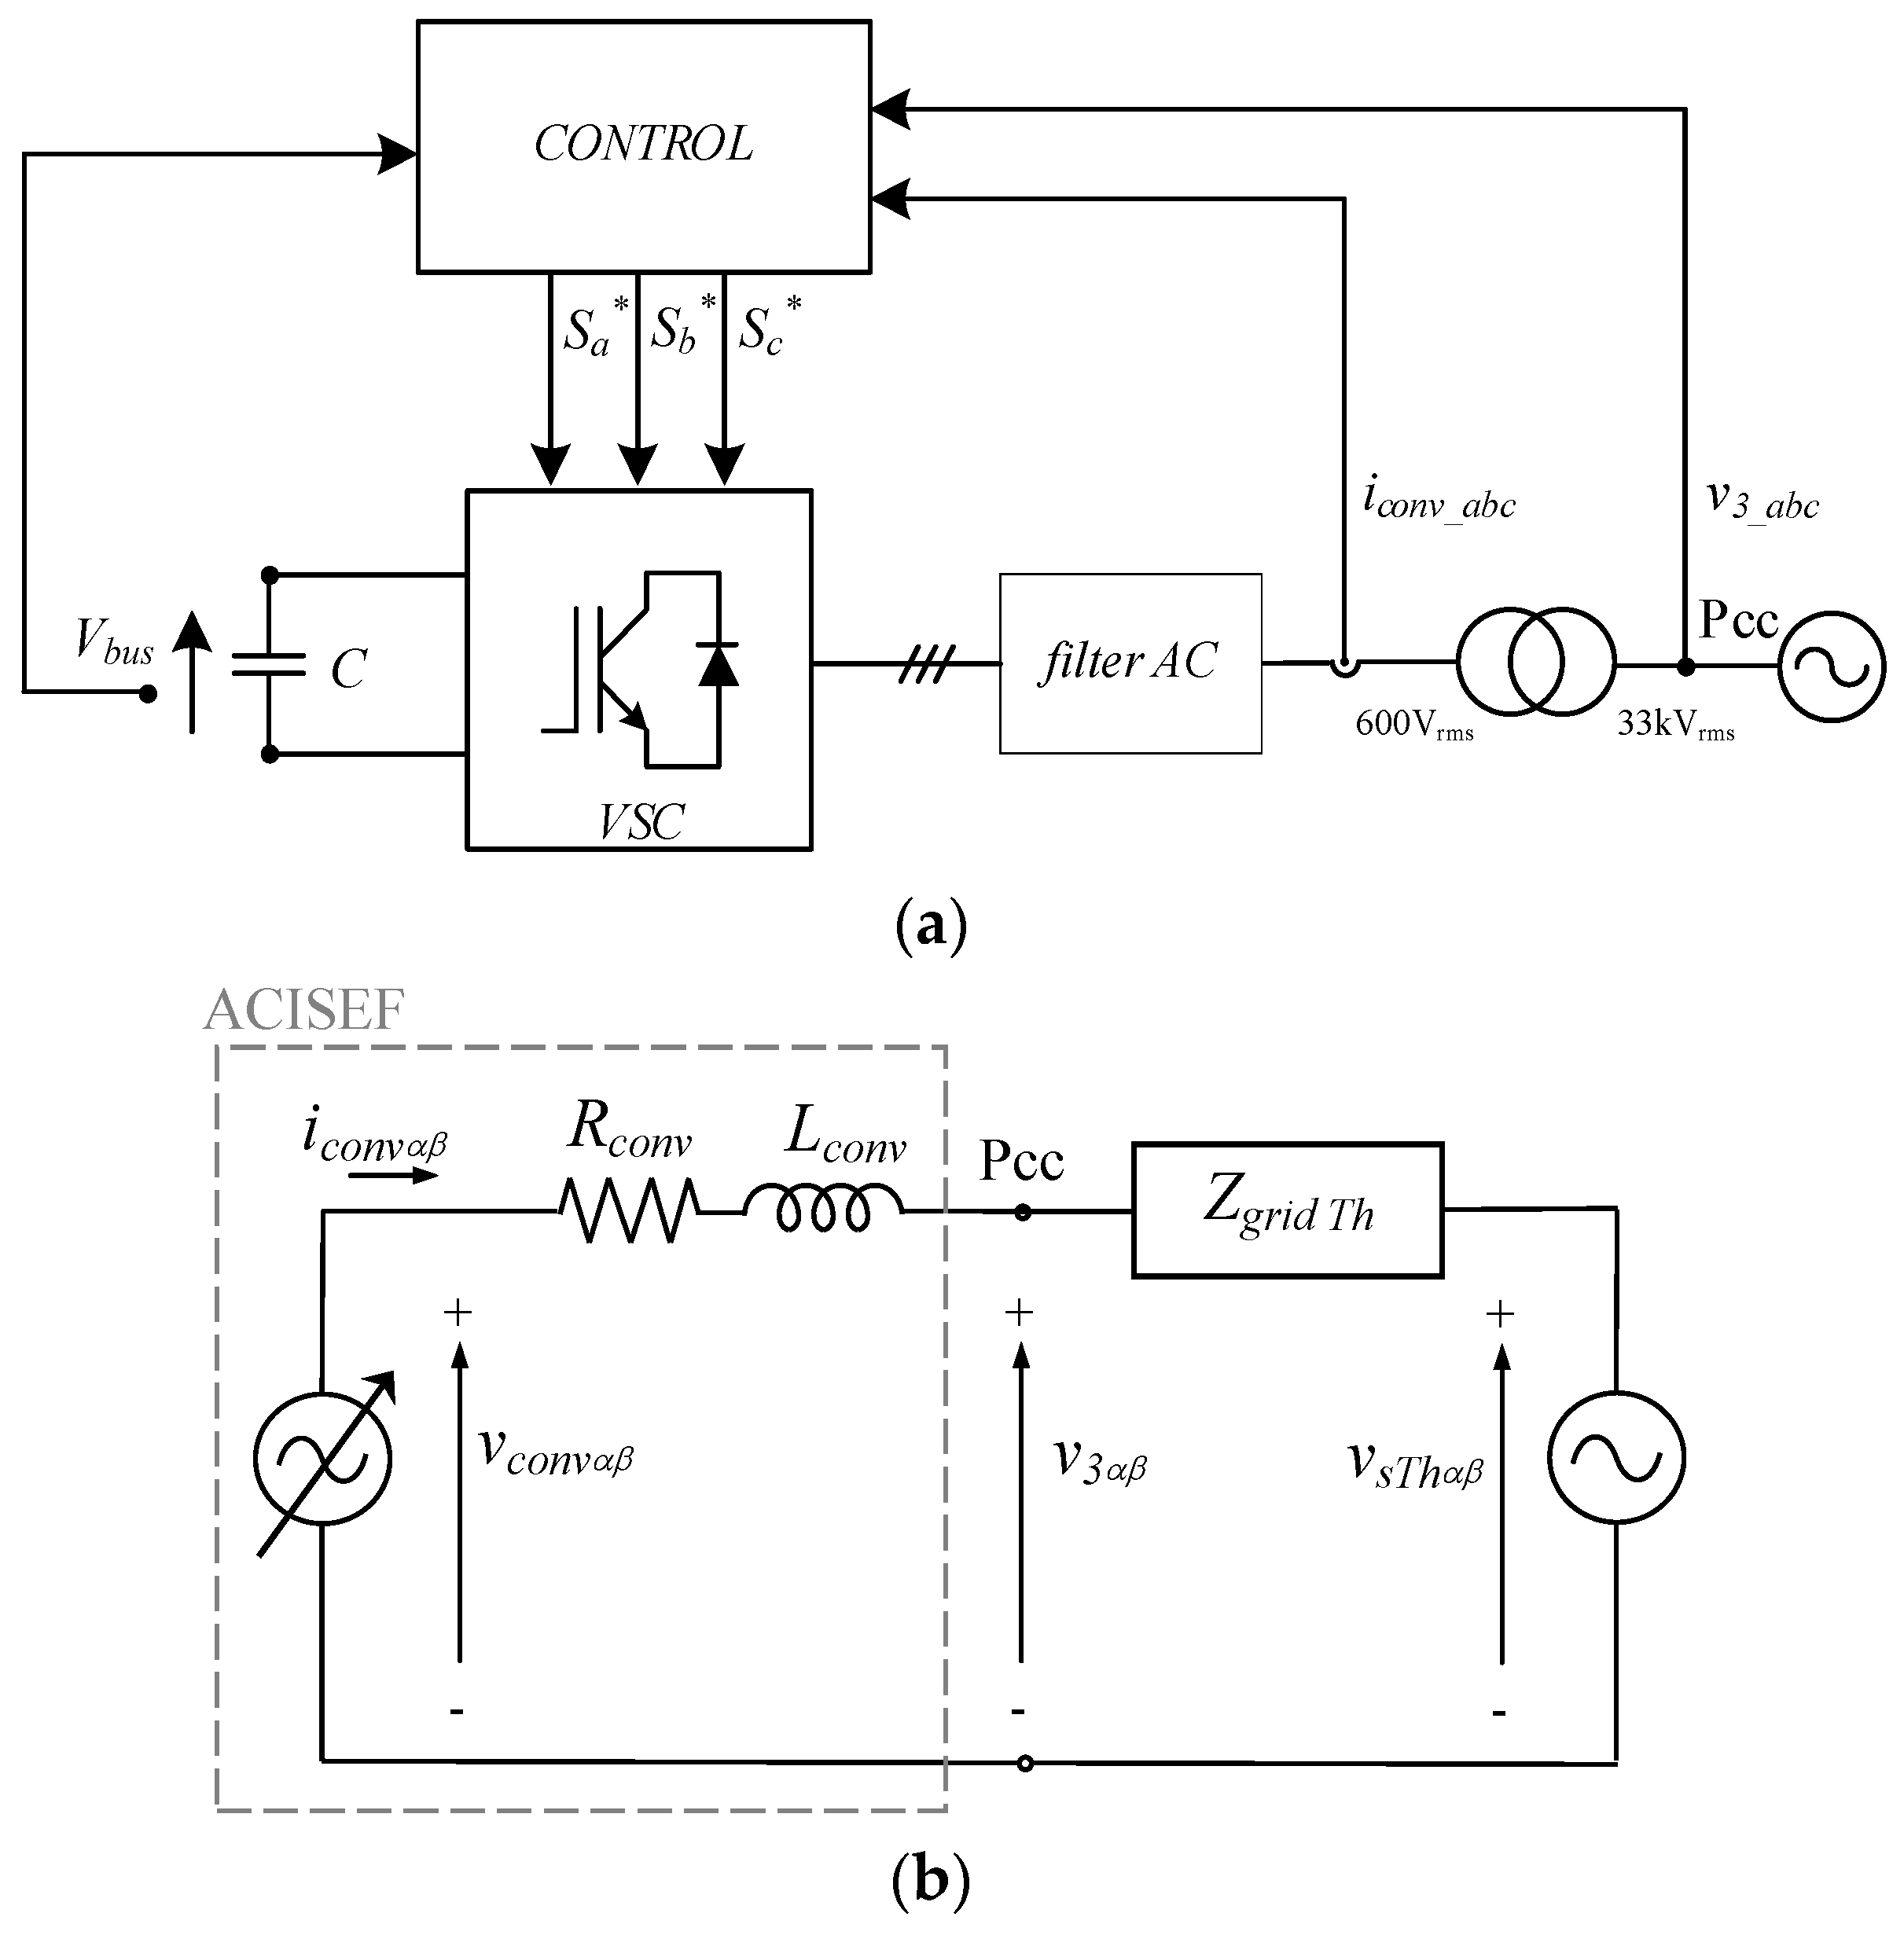 Energies Free Full Text Analytical Modeling Approach To Study By Simplifying The Circuit With Equivalent Ac We Get No